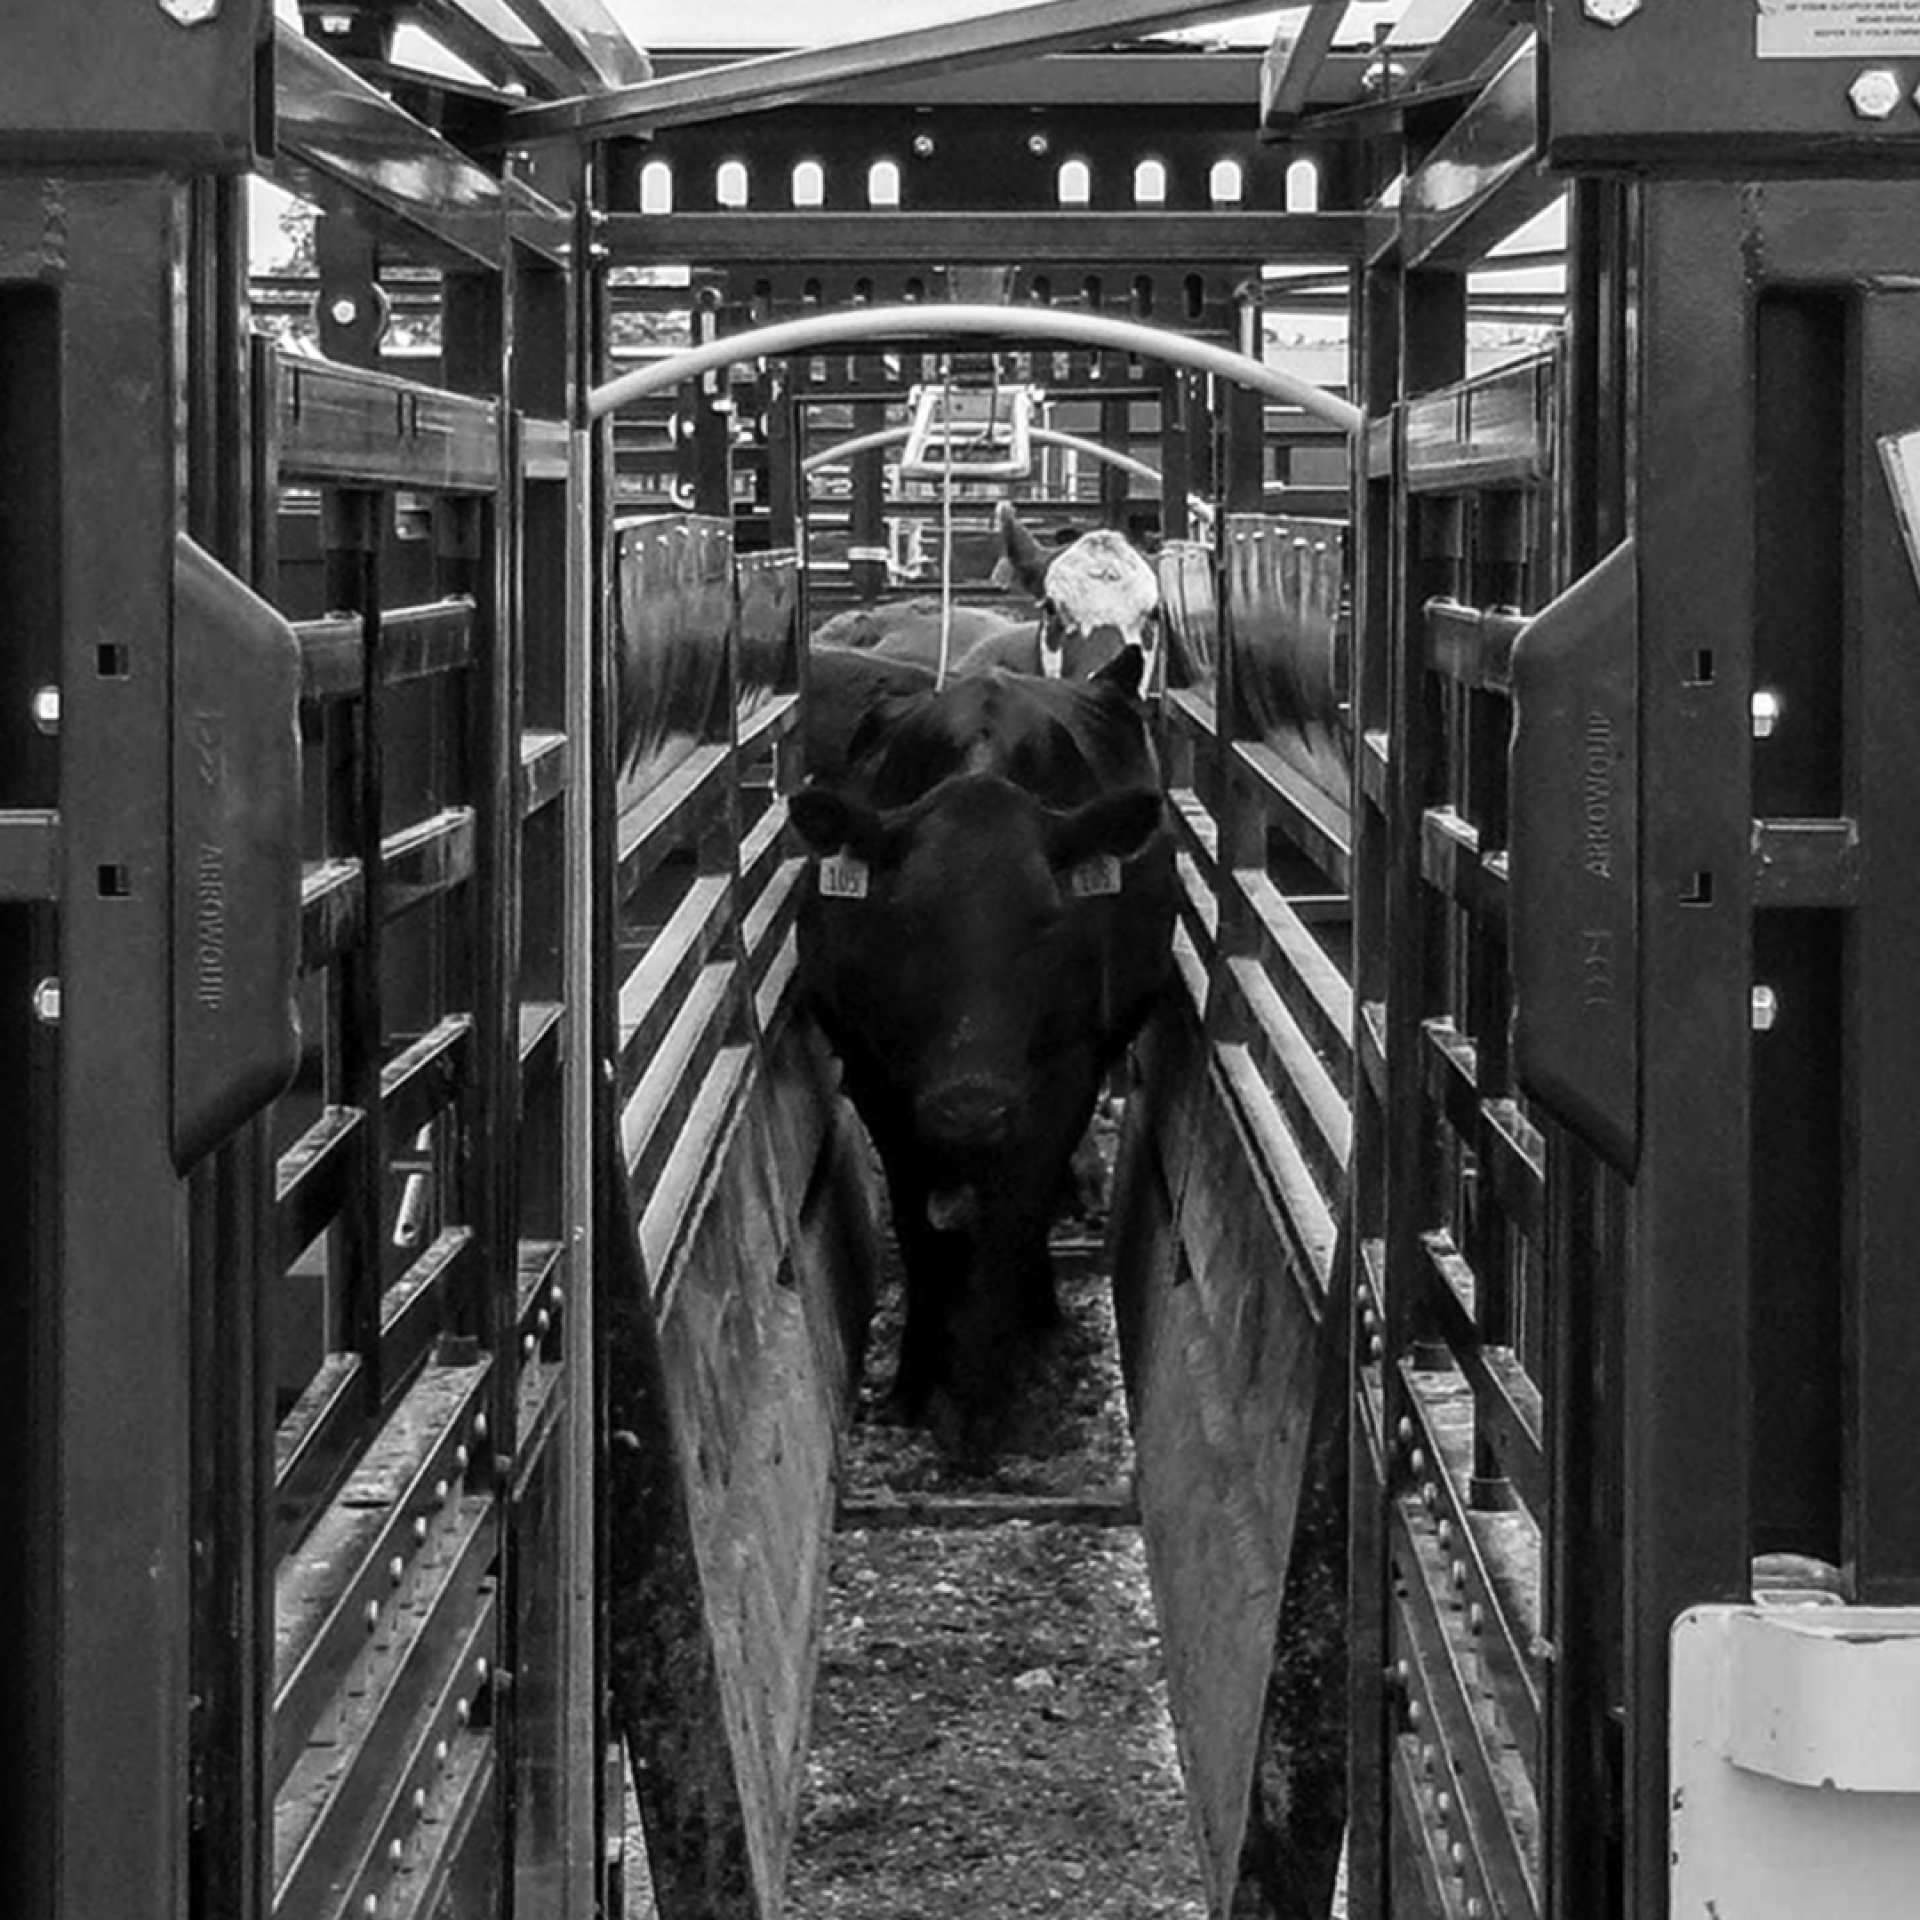 Image of cattle walking through a cattle alley and cattle chute